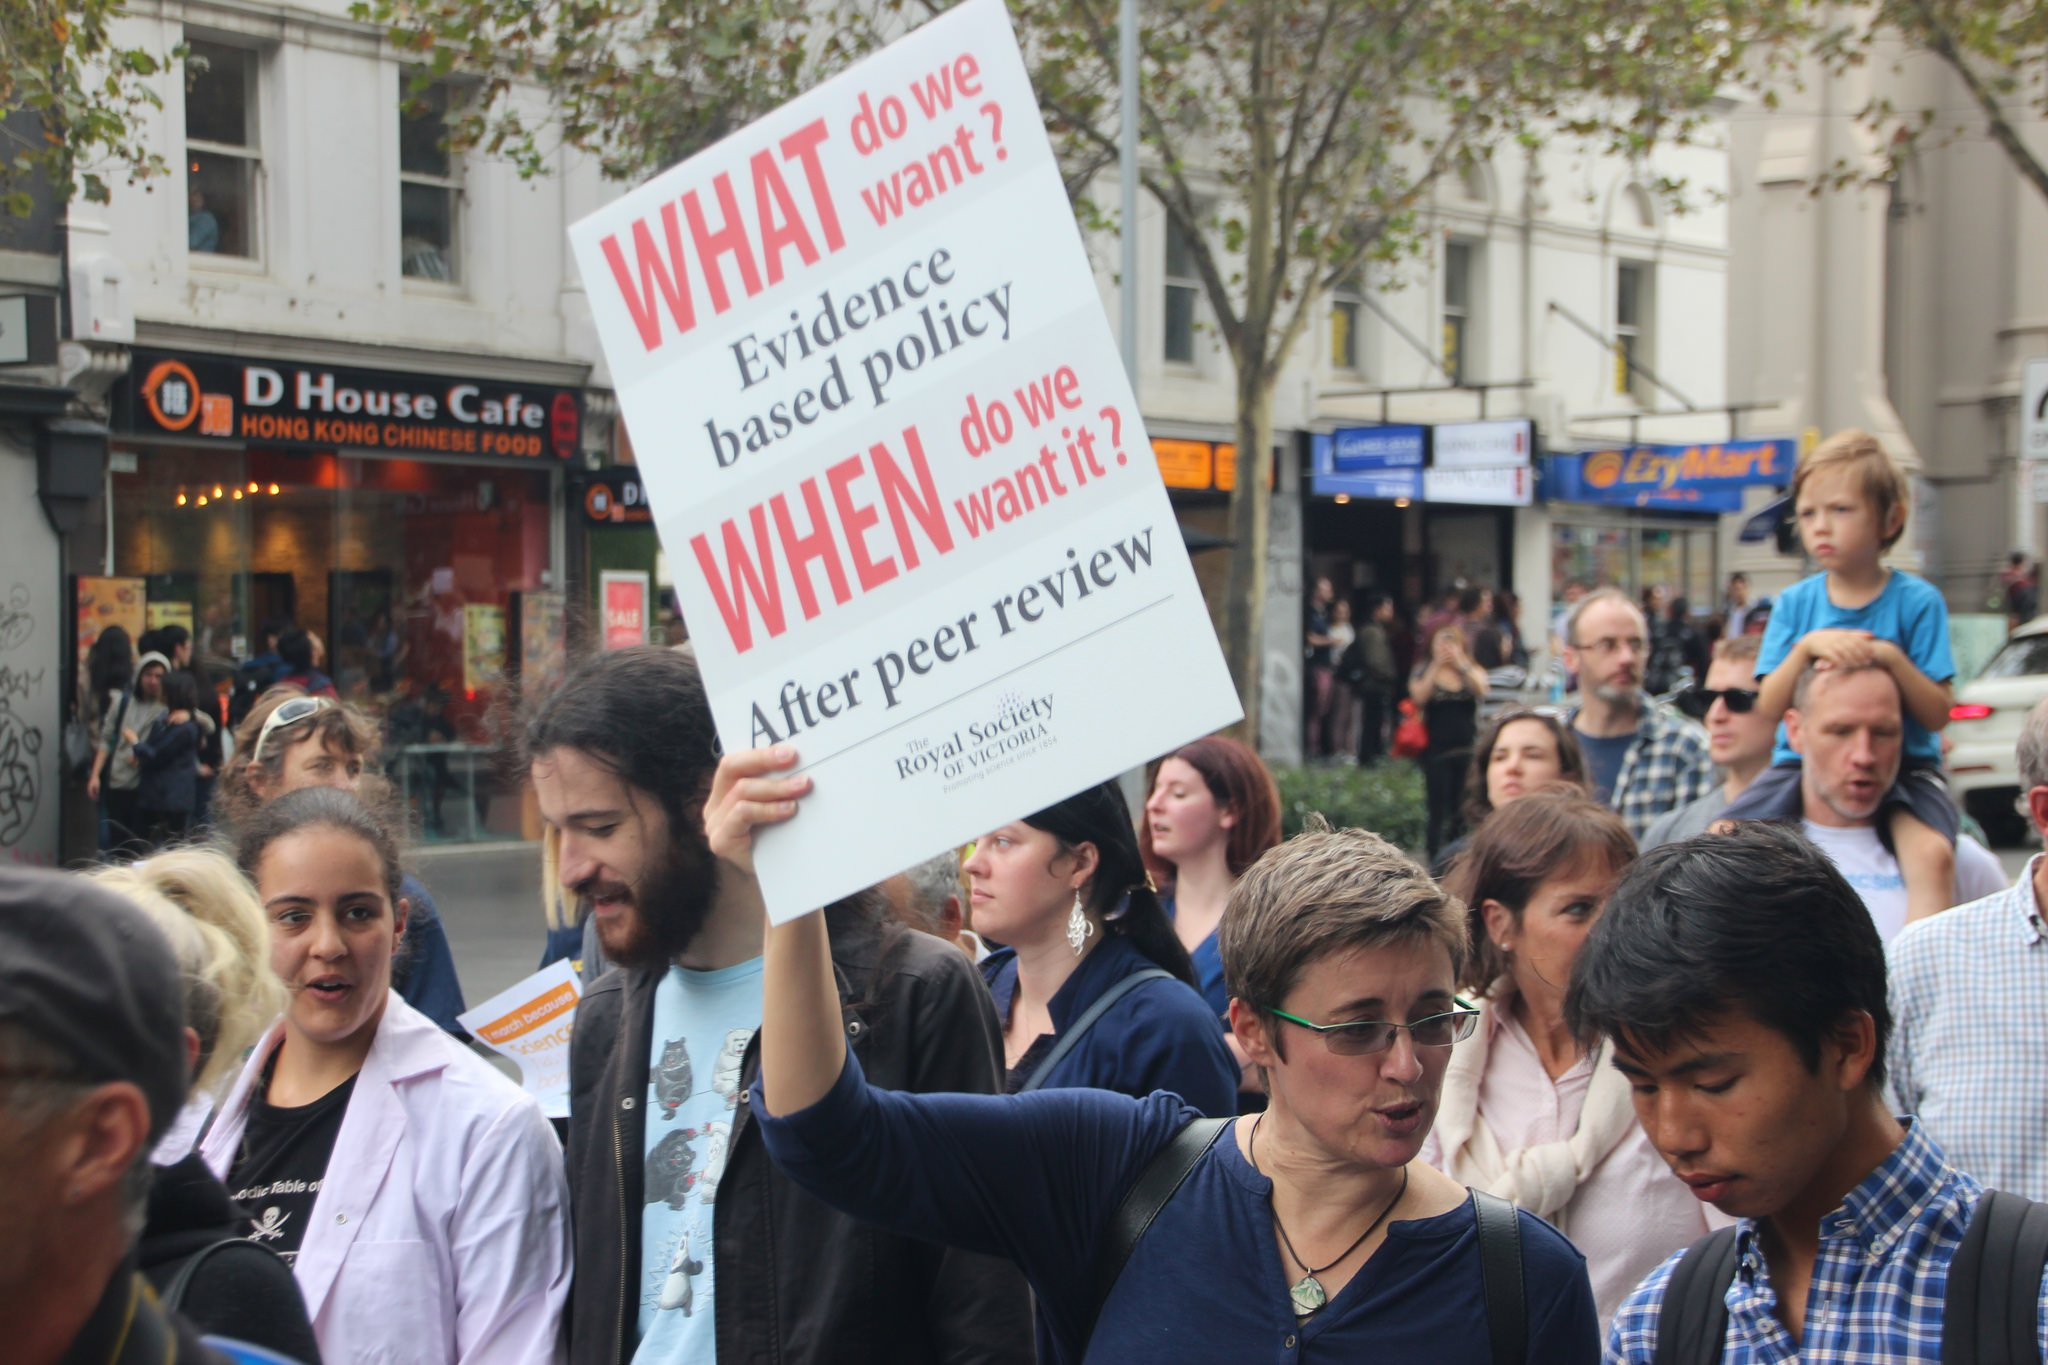 Thousands of Melburnians turned up and marched for science on April 22, #Earthday2017. Science matters to society. The march is based upon 4 major goals: science literacy, open communication, informed public policy, and stable investment in science a